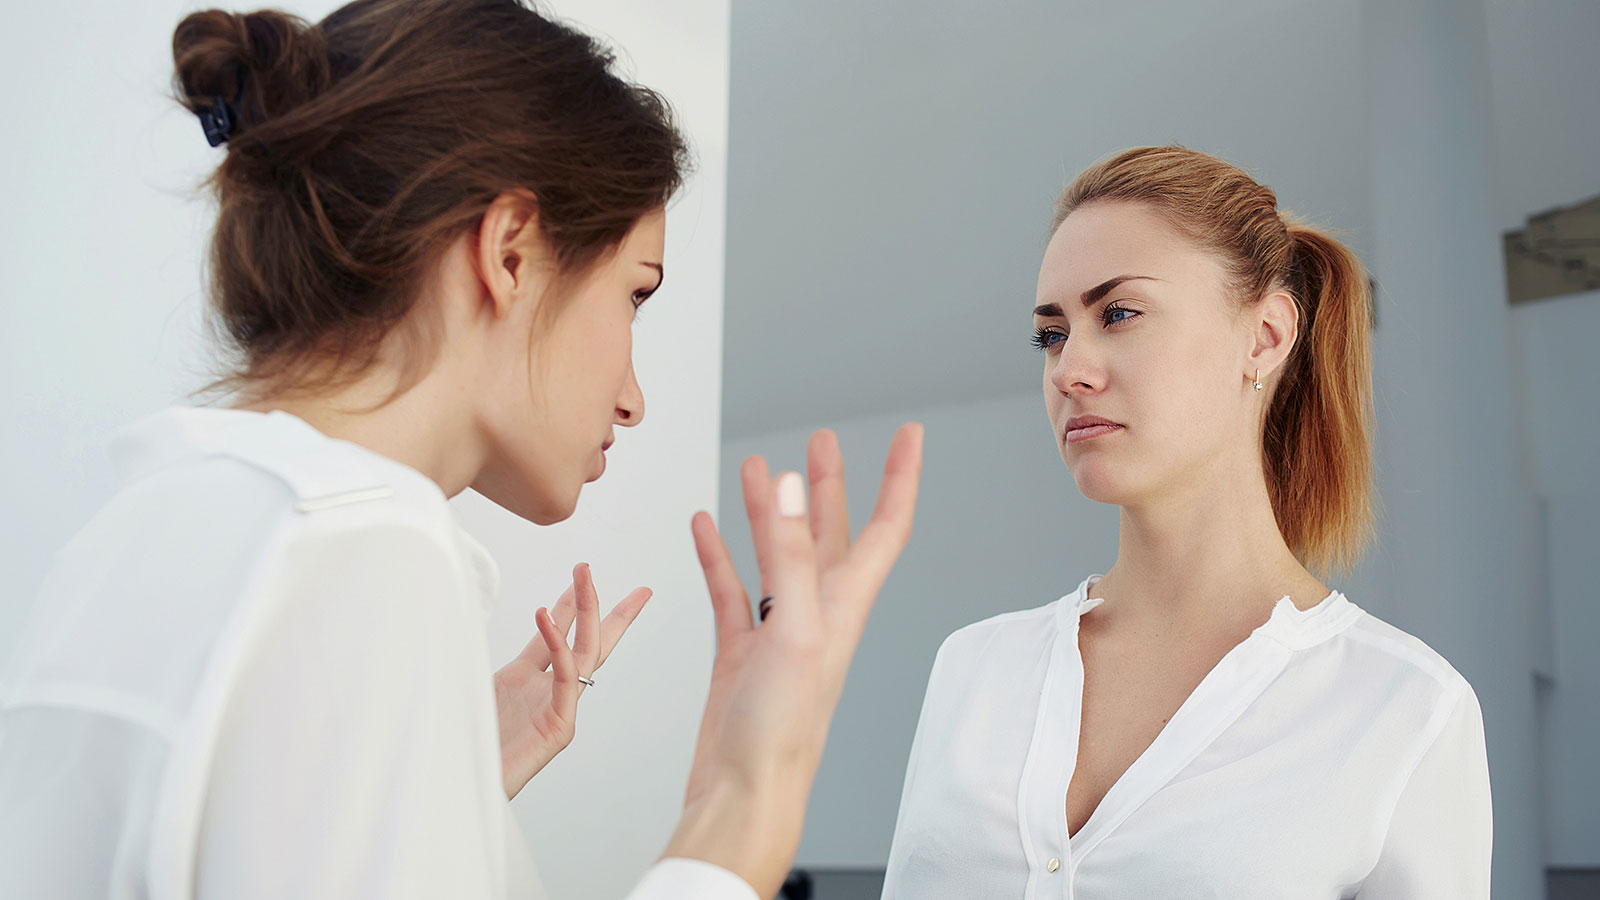 The most dangerous conversations to have in the office